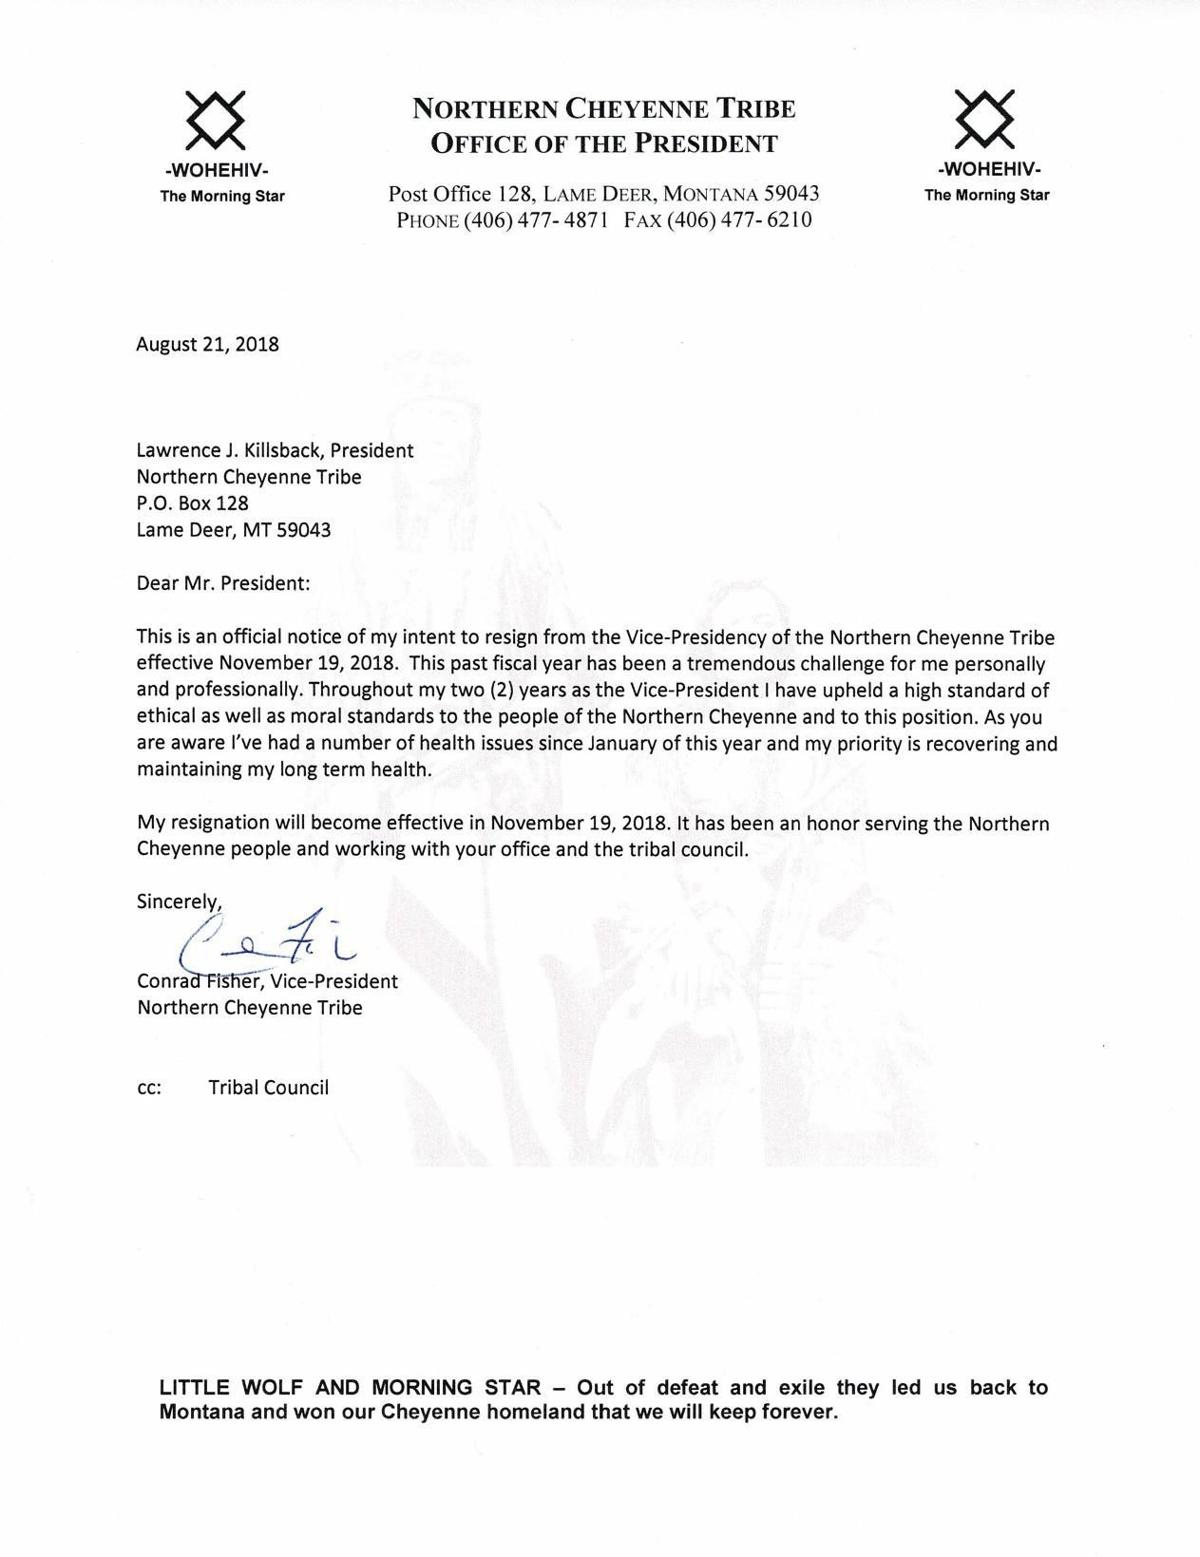 Conrad Fisher Resignation Letter Dated Aug 21 Billingsgazette